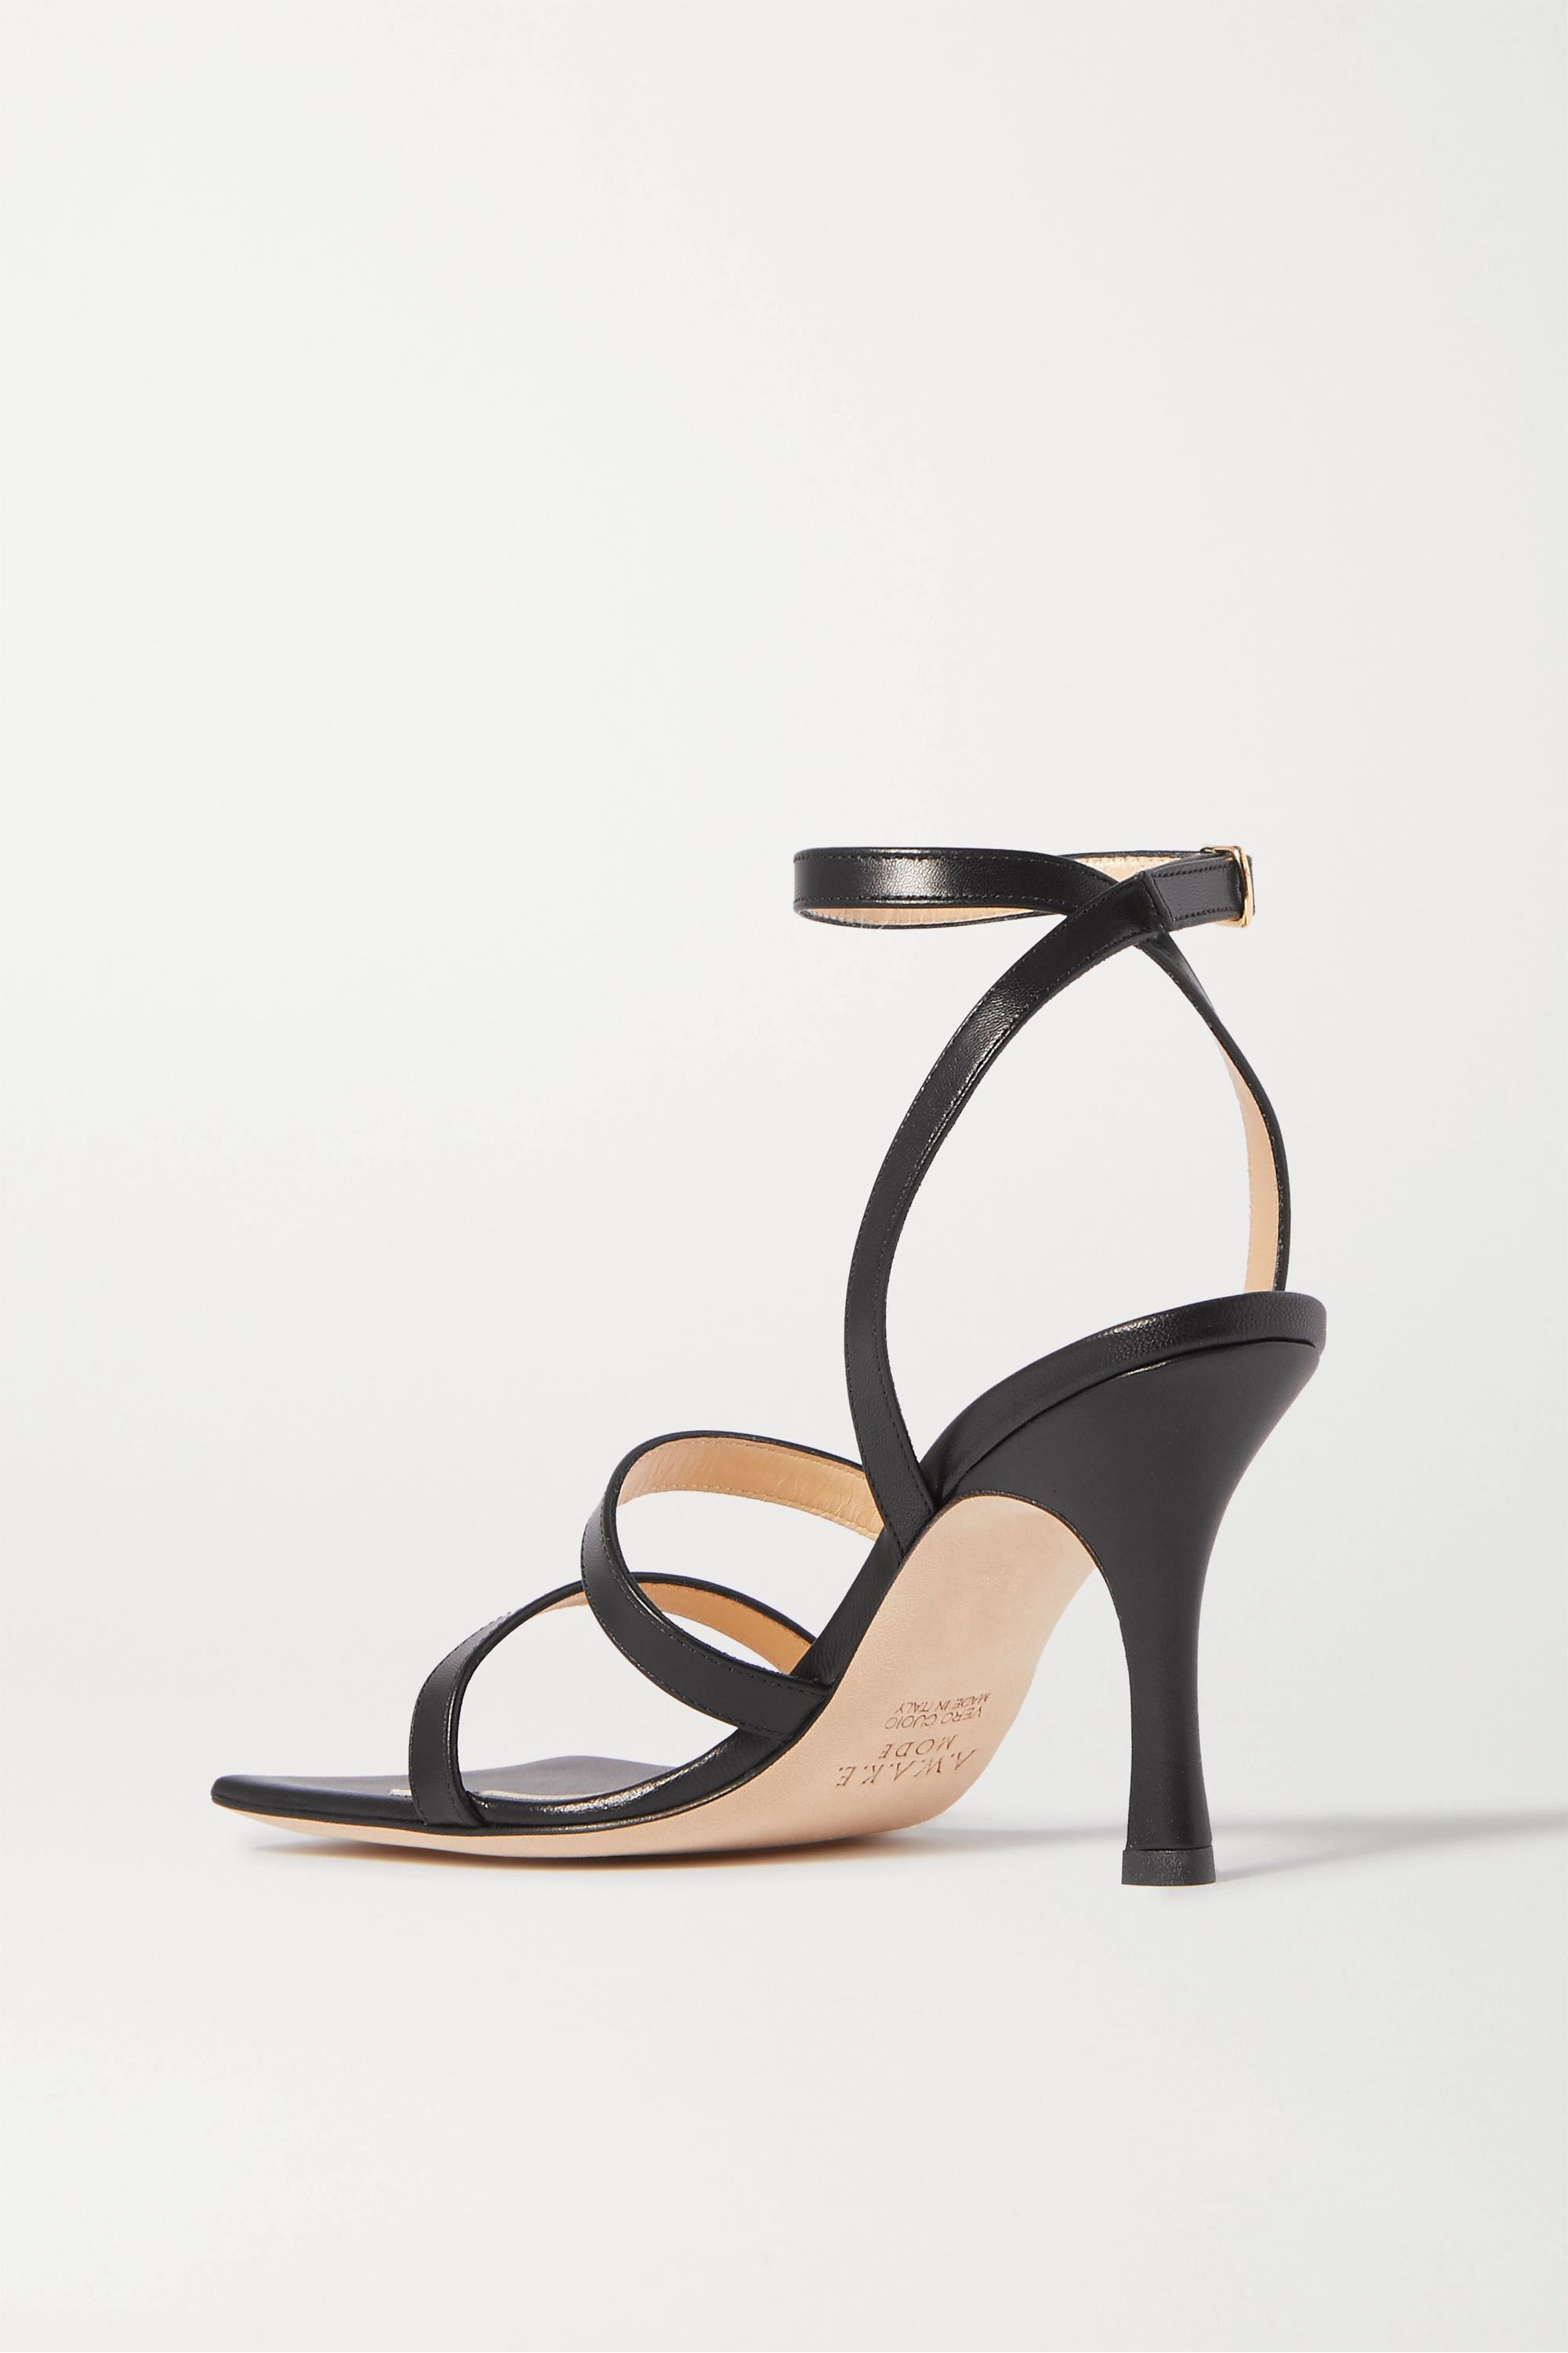 A.W.A.K.E. MODE Rebecca leather sandals